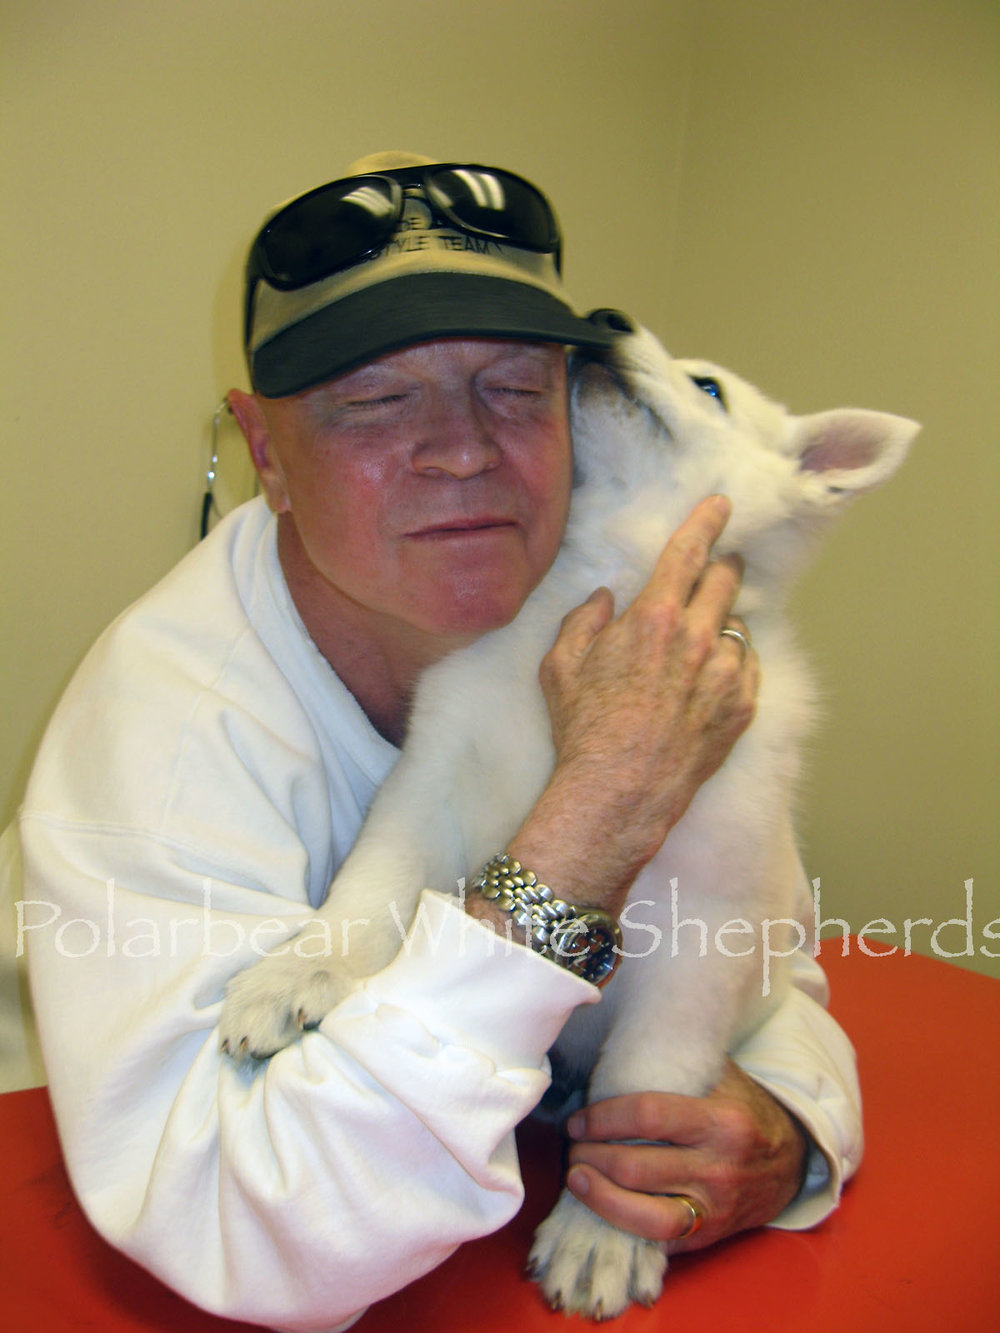 A new owner at his puppy's first well puppy check here at Polarbear Land.